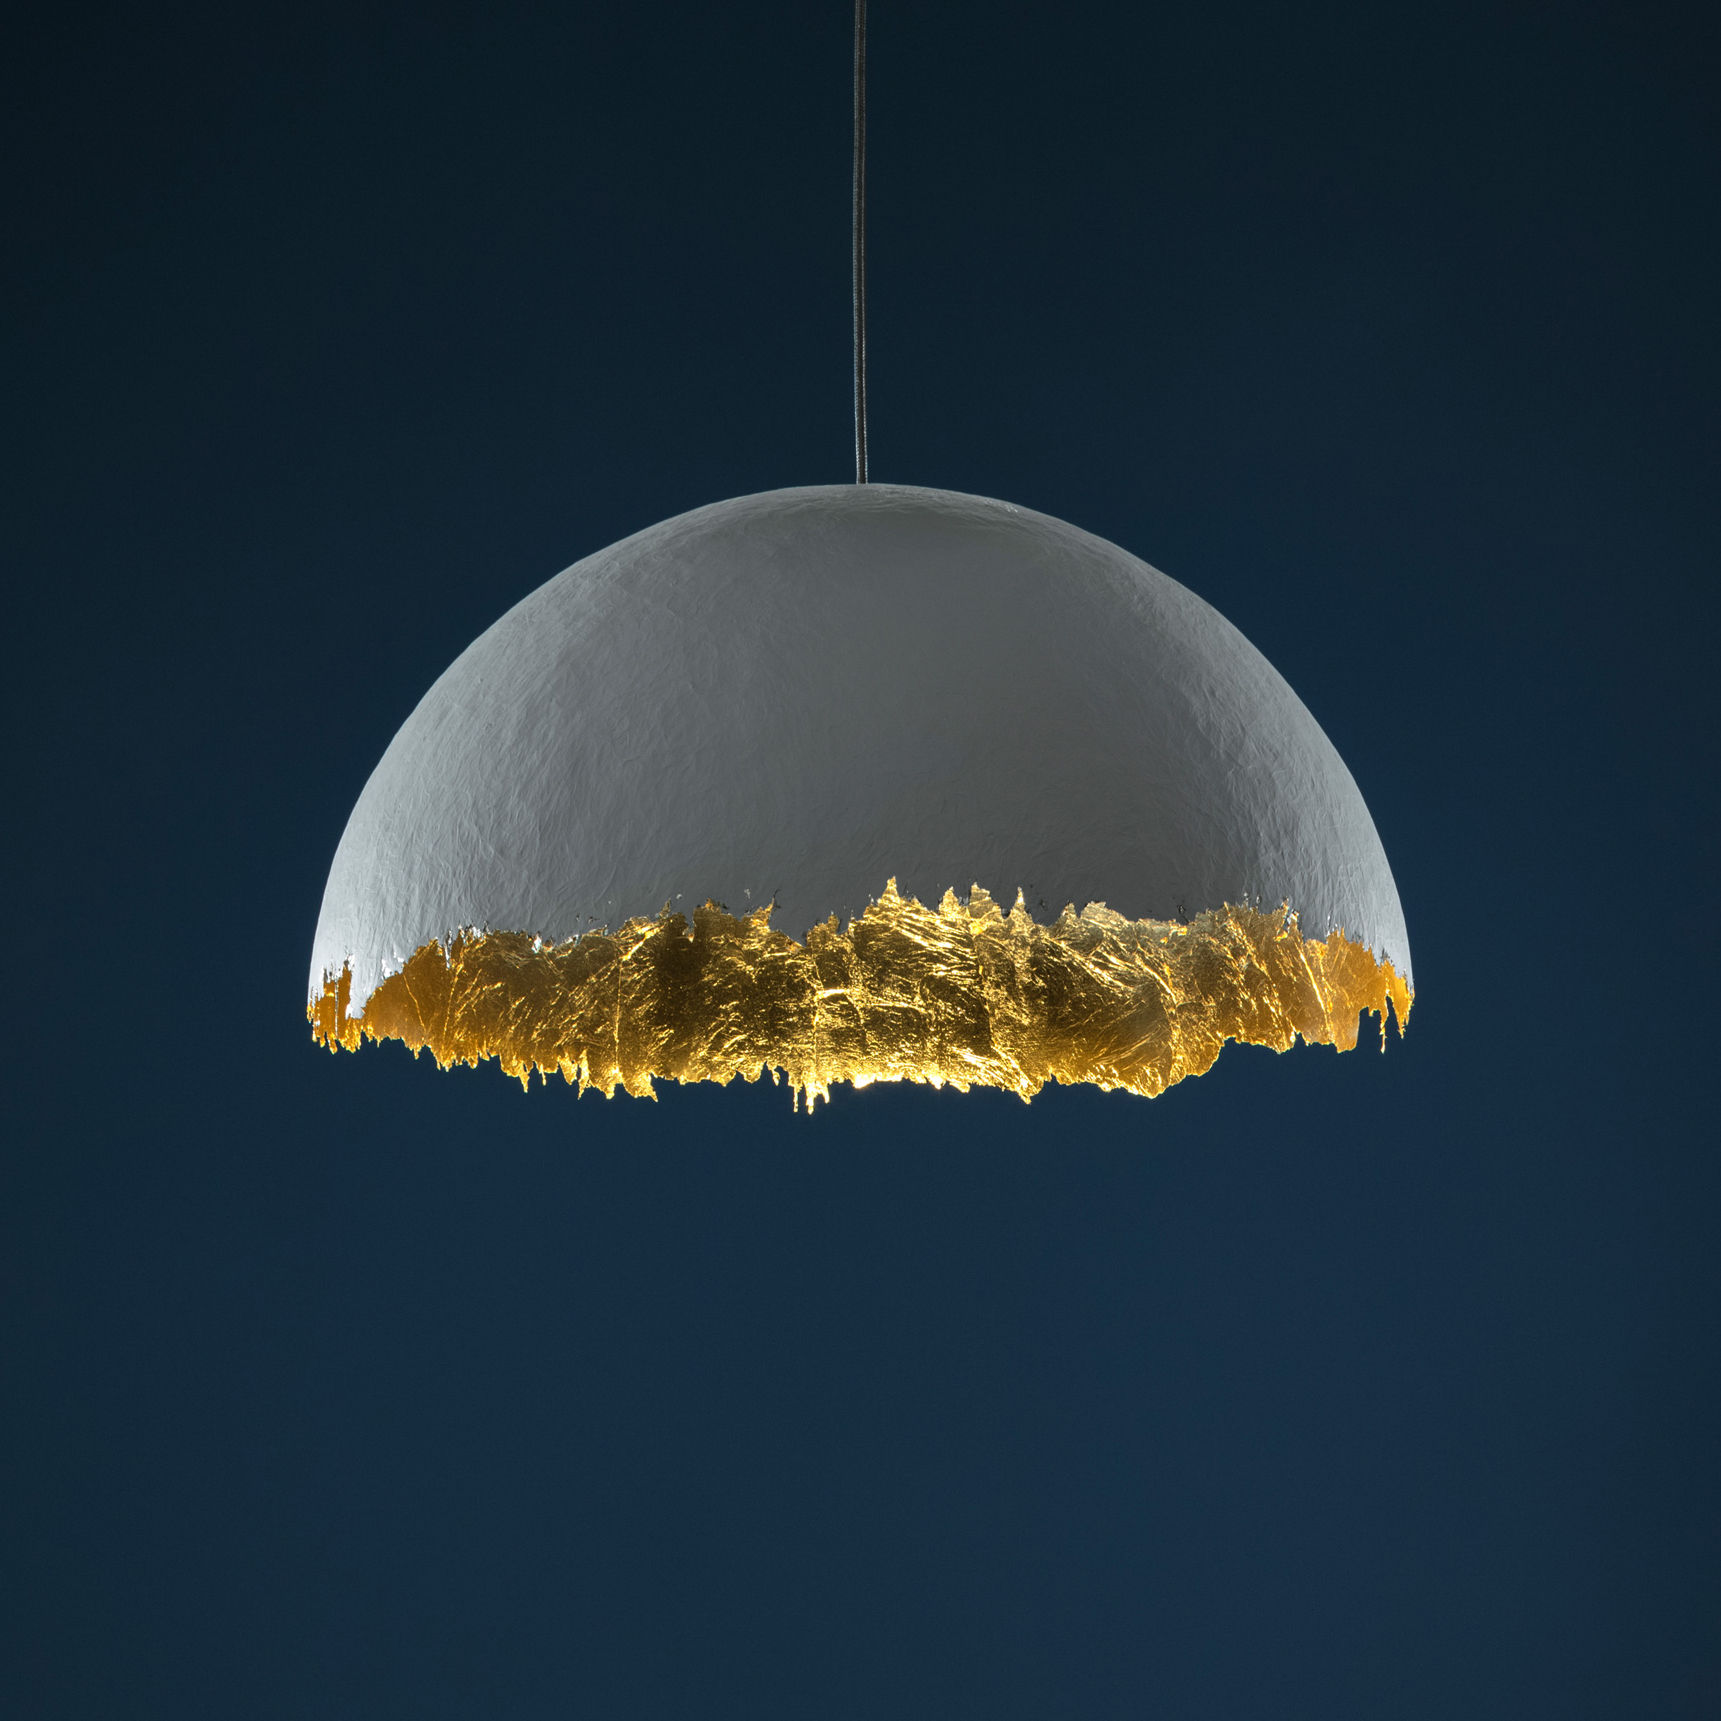 Lighting - Pendant Lighting - Suspension PostKrisi 49 Pendant - / Ø 60 cm by Catellani & Smith - White / Gold inside - Fibreglass, Gold leaf